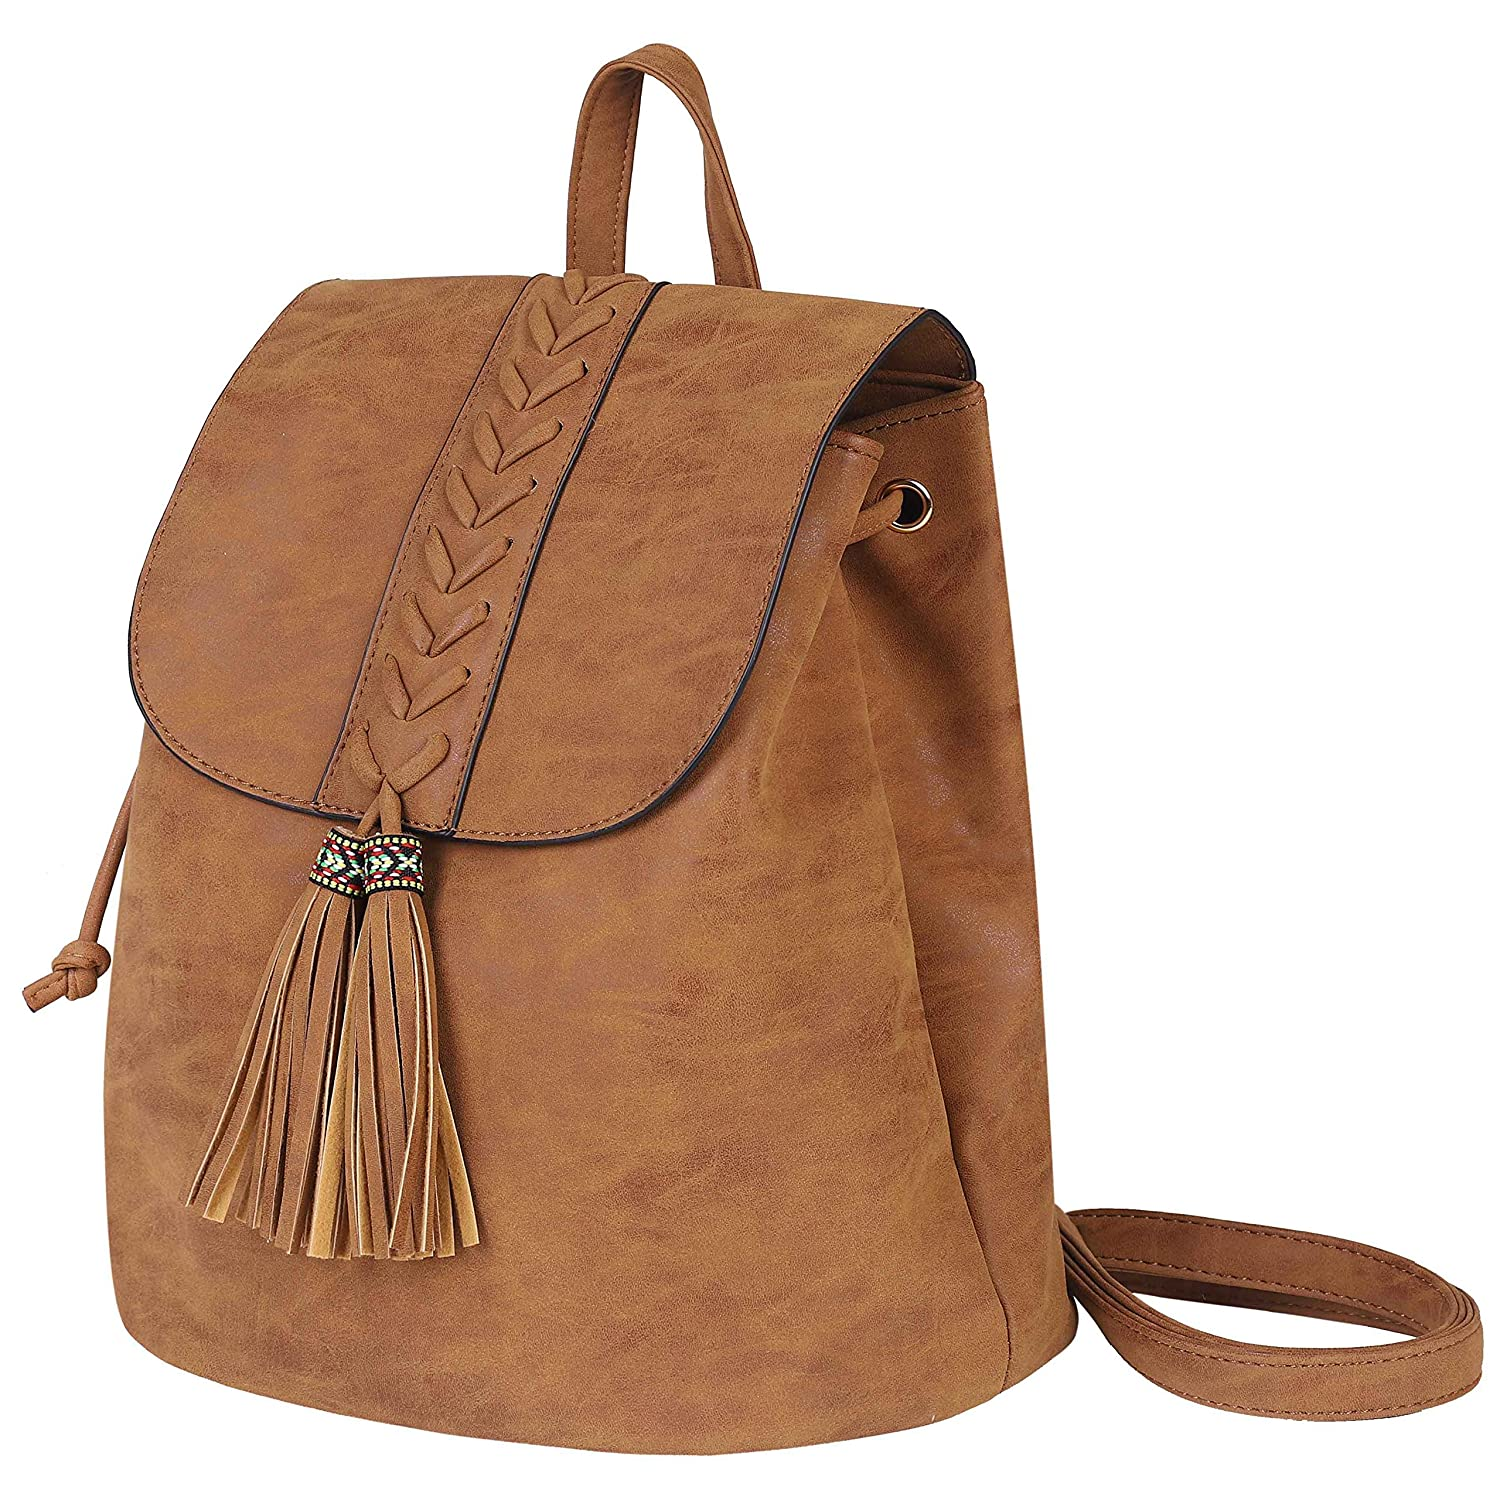 Lady Backpack Casual Rucksack for Women Bohemia Small Bag Waterproof PU with Tassel Vintage Ethnic Style Backpack for Traveling Dating Holidays Party Brown Shopping